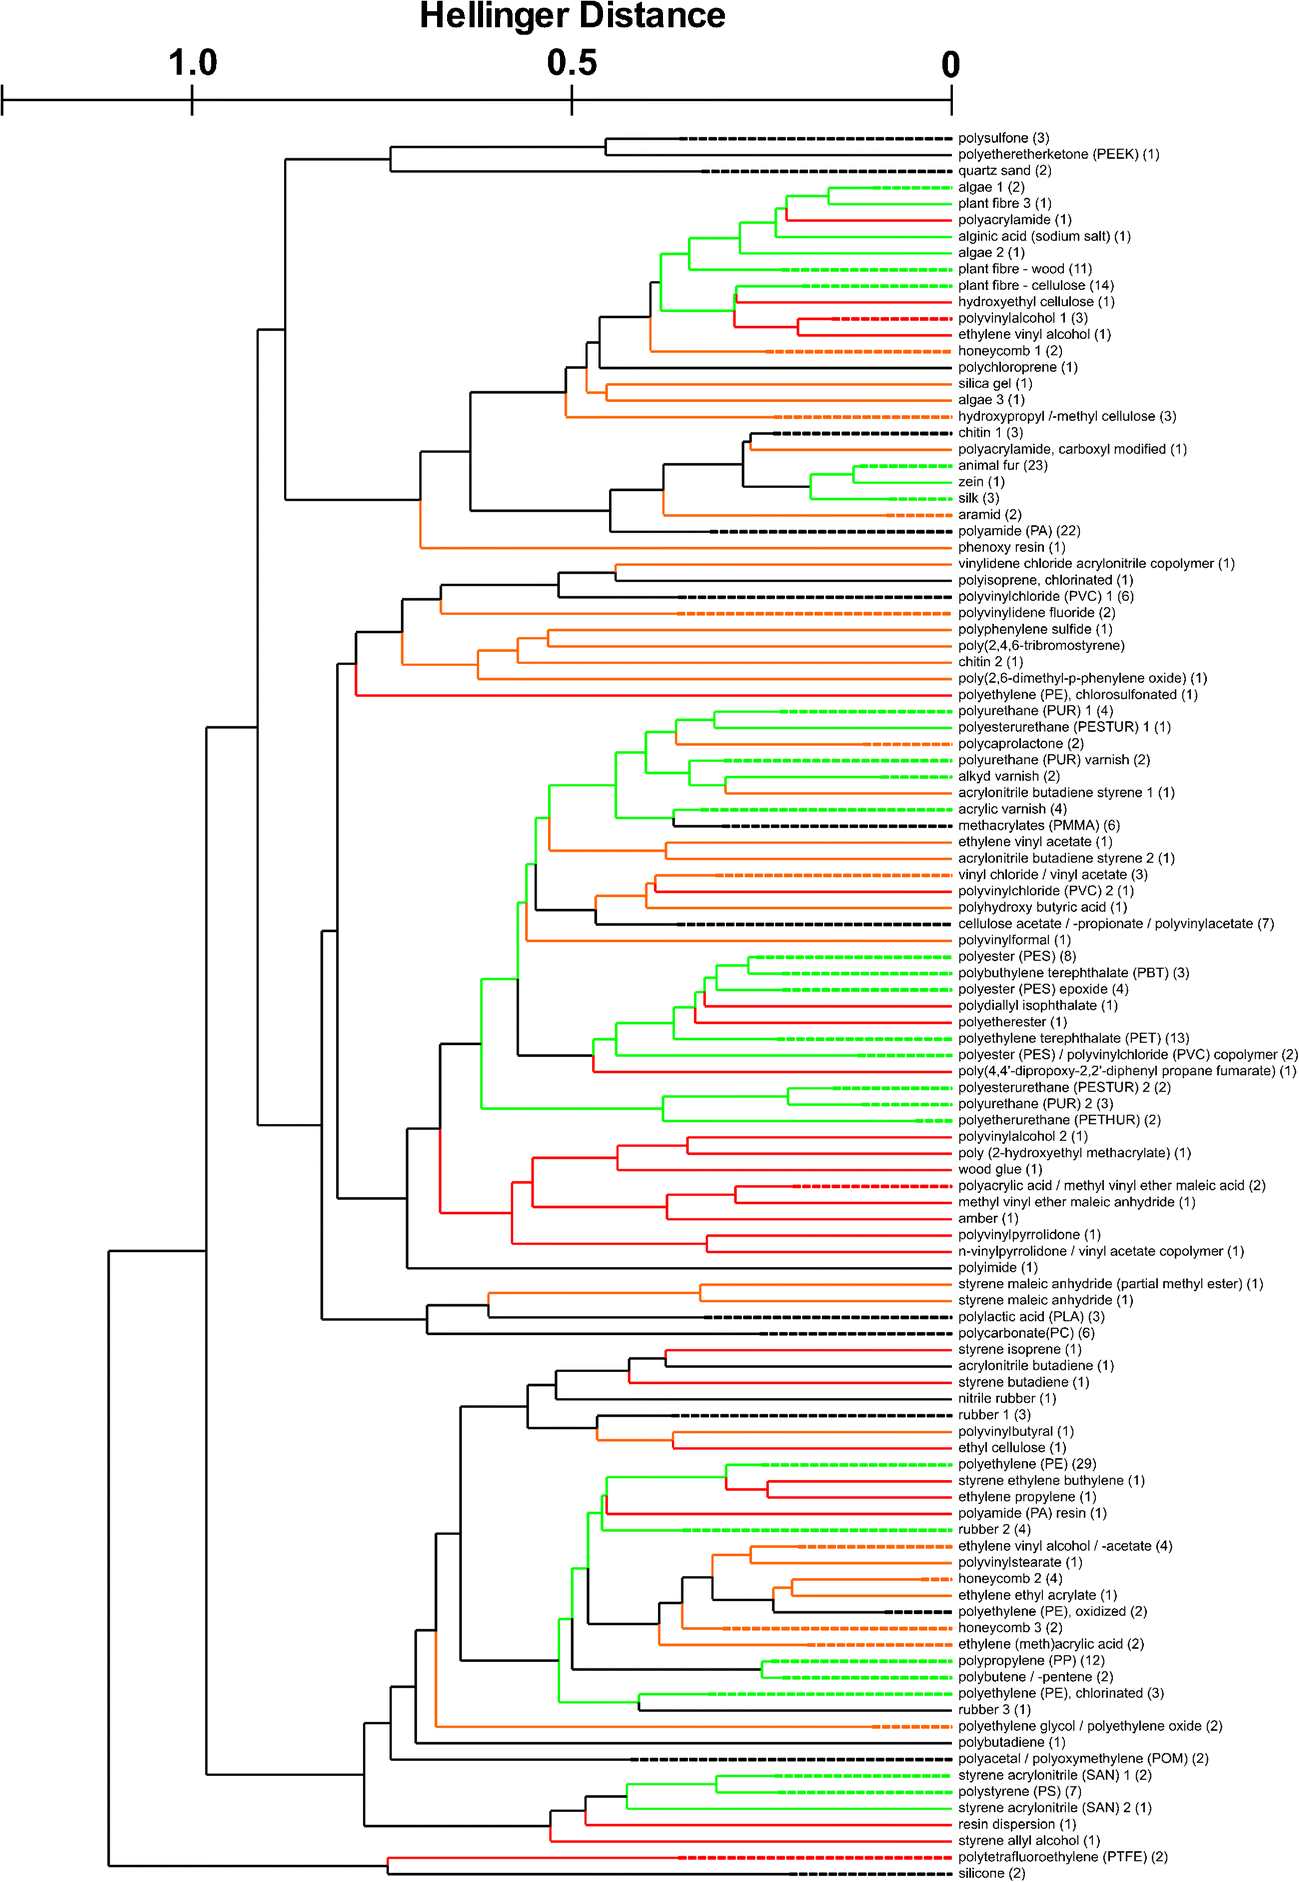 Reference database design for the automated analysis of microplastic